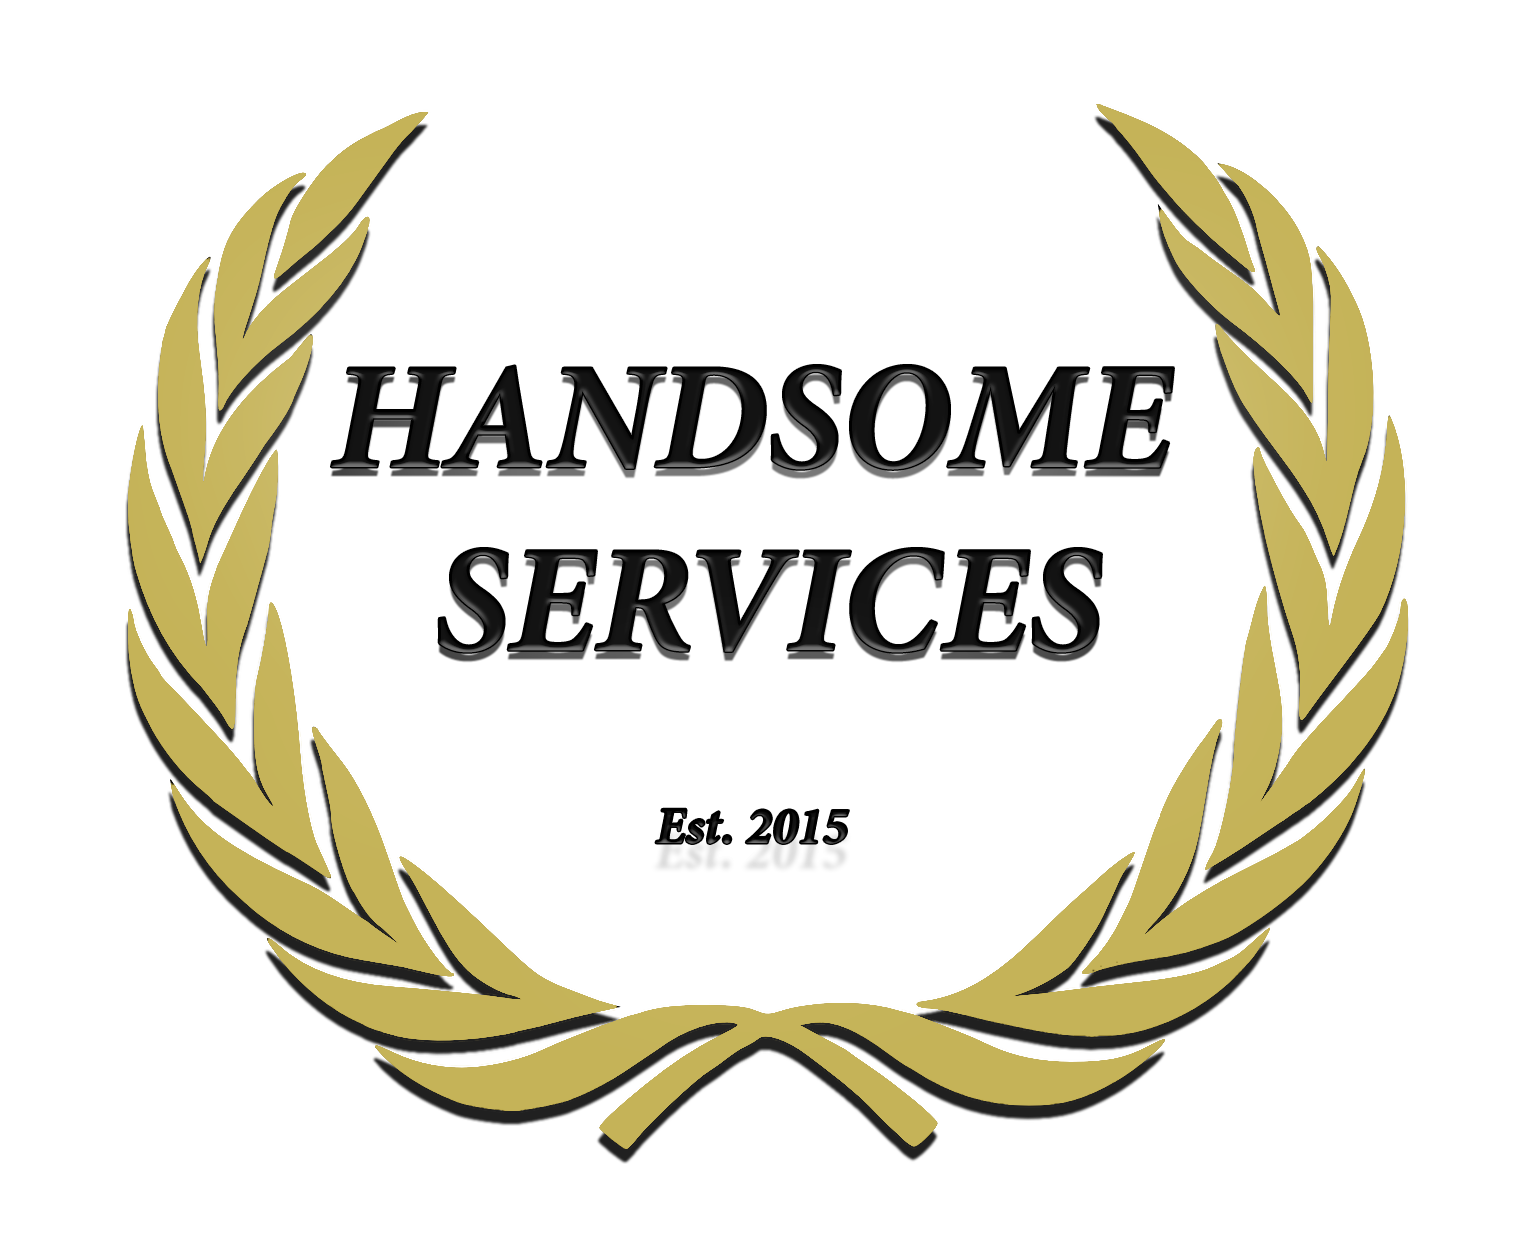 Book an appointment with Kenneth of Handsome Services